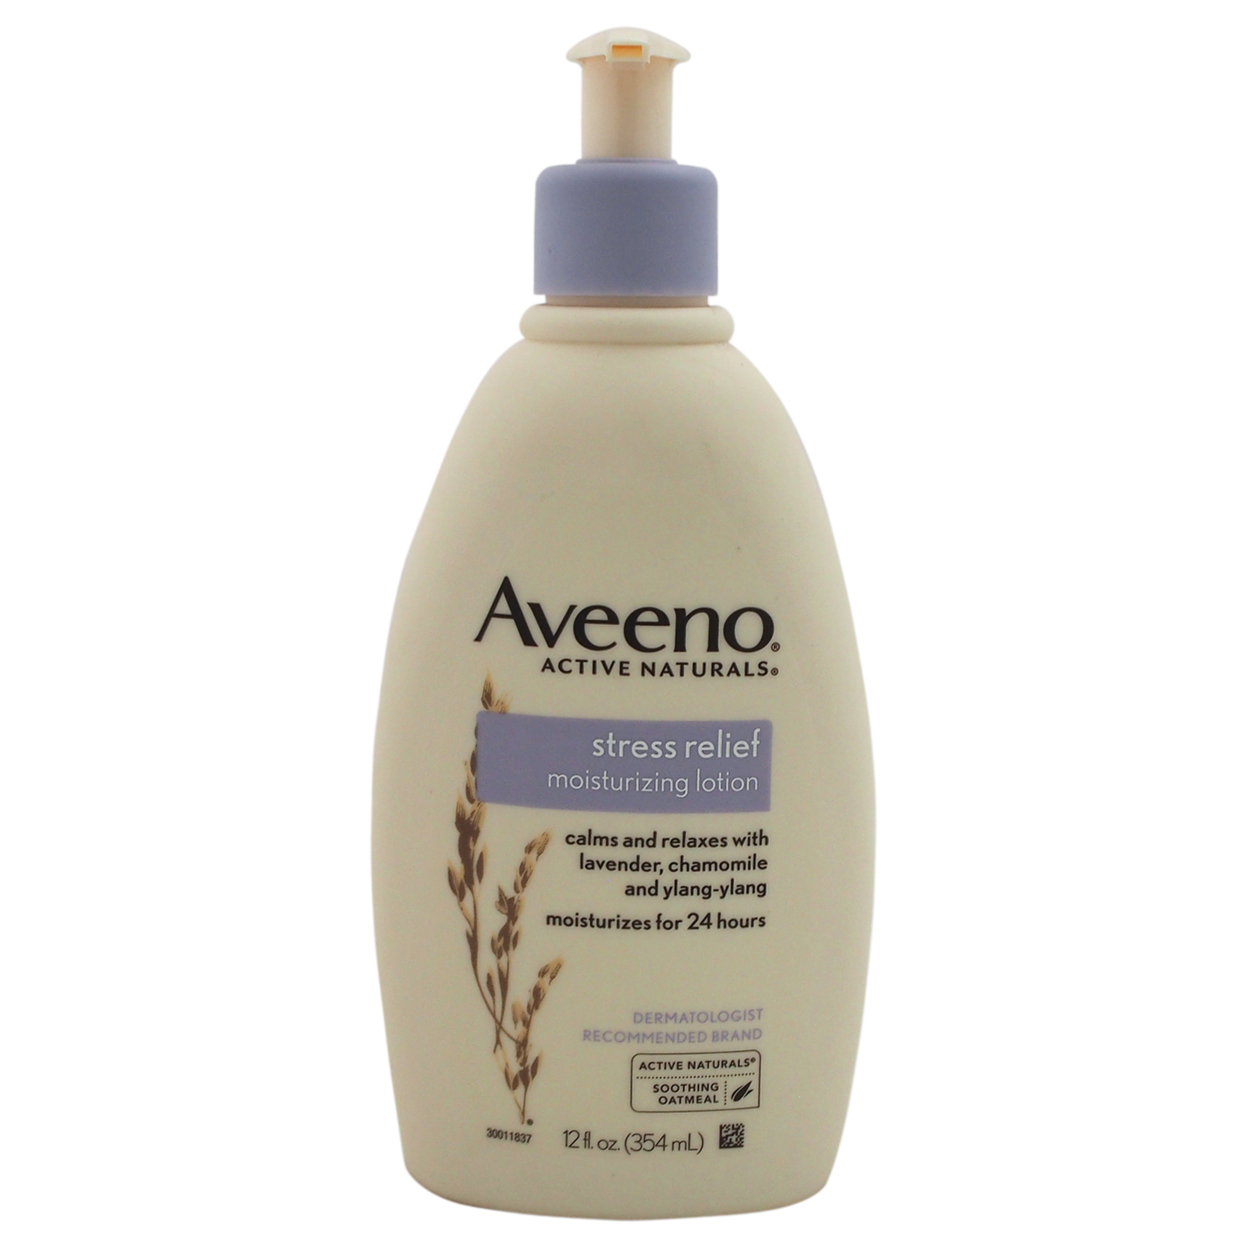 Stress Relief Moisturizing Lotion by Aveeno for Unisex - 12 oz Lotion 5898e18ac98fc450945d6ca5